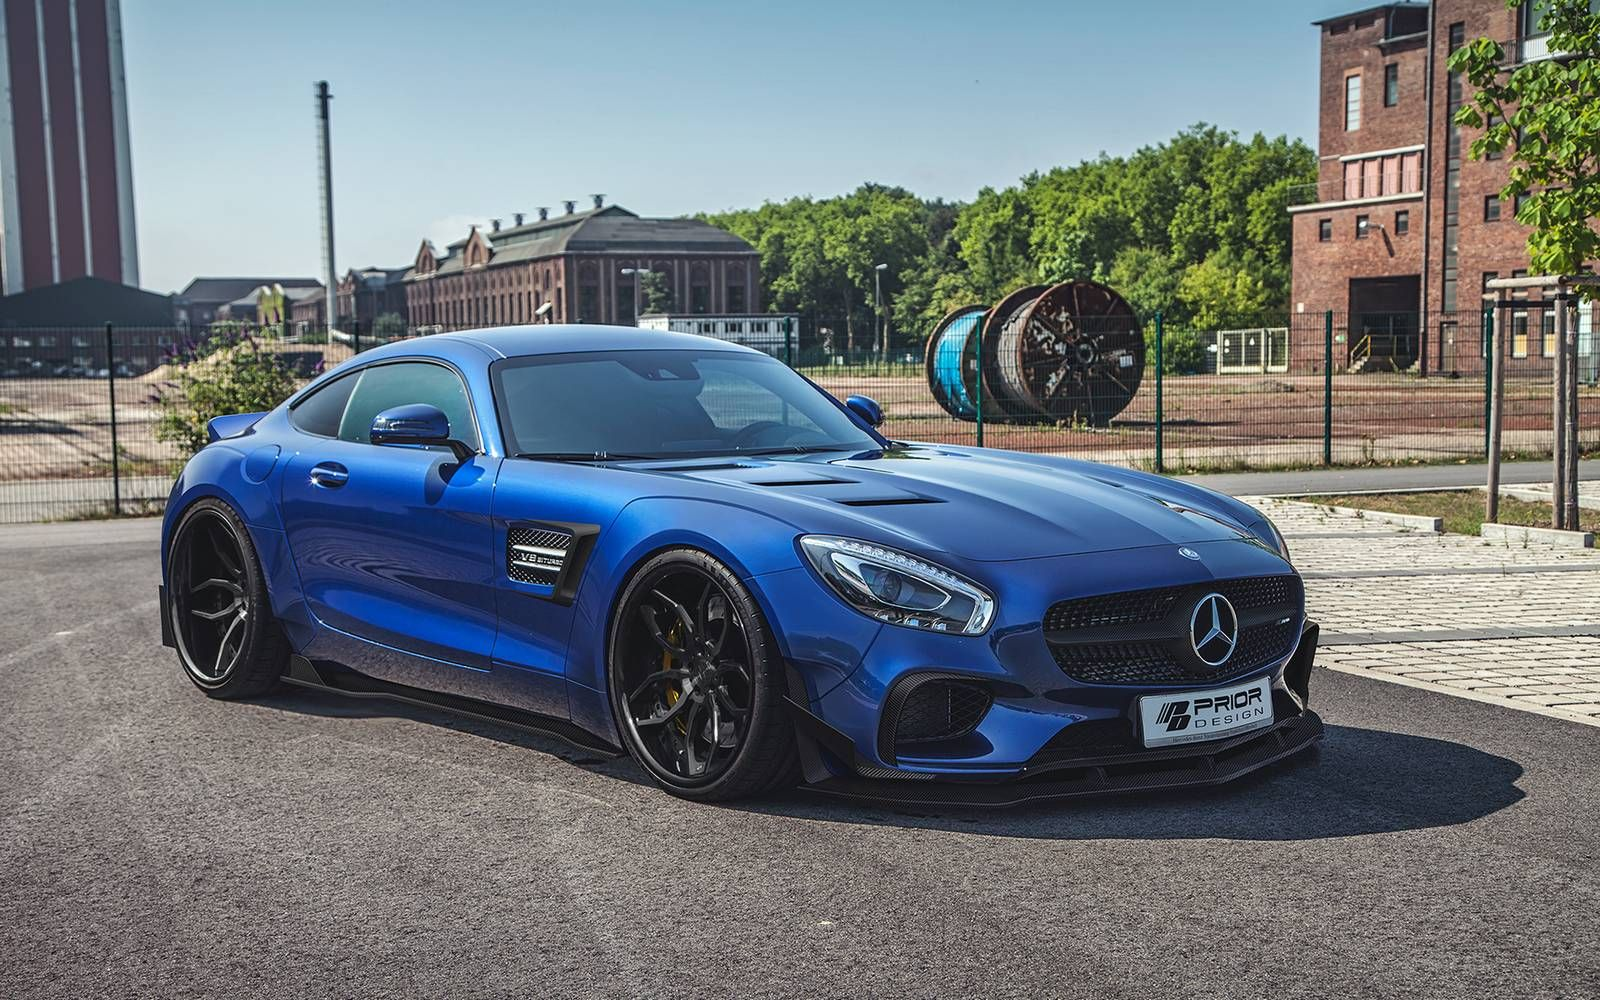 The Supercar Kids Prior Design Reveal Body Kit For Mercedes Amg Gt Mercedes Amg Gt S New Mercedes Amg Mercedes Amg